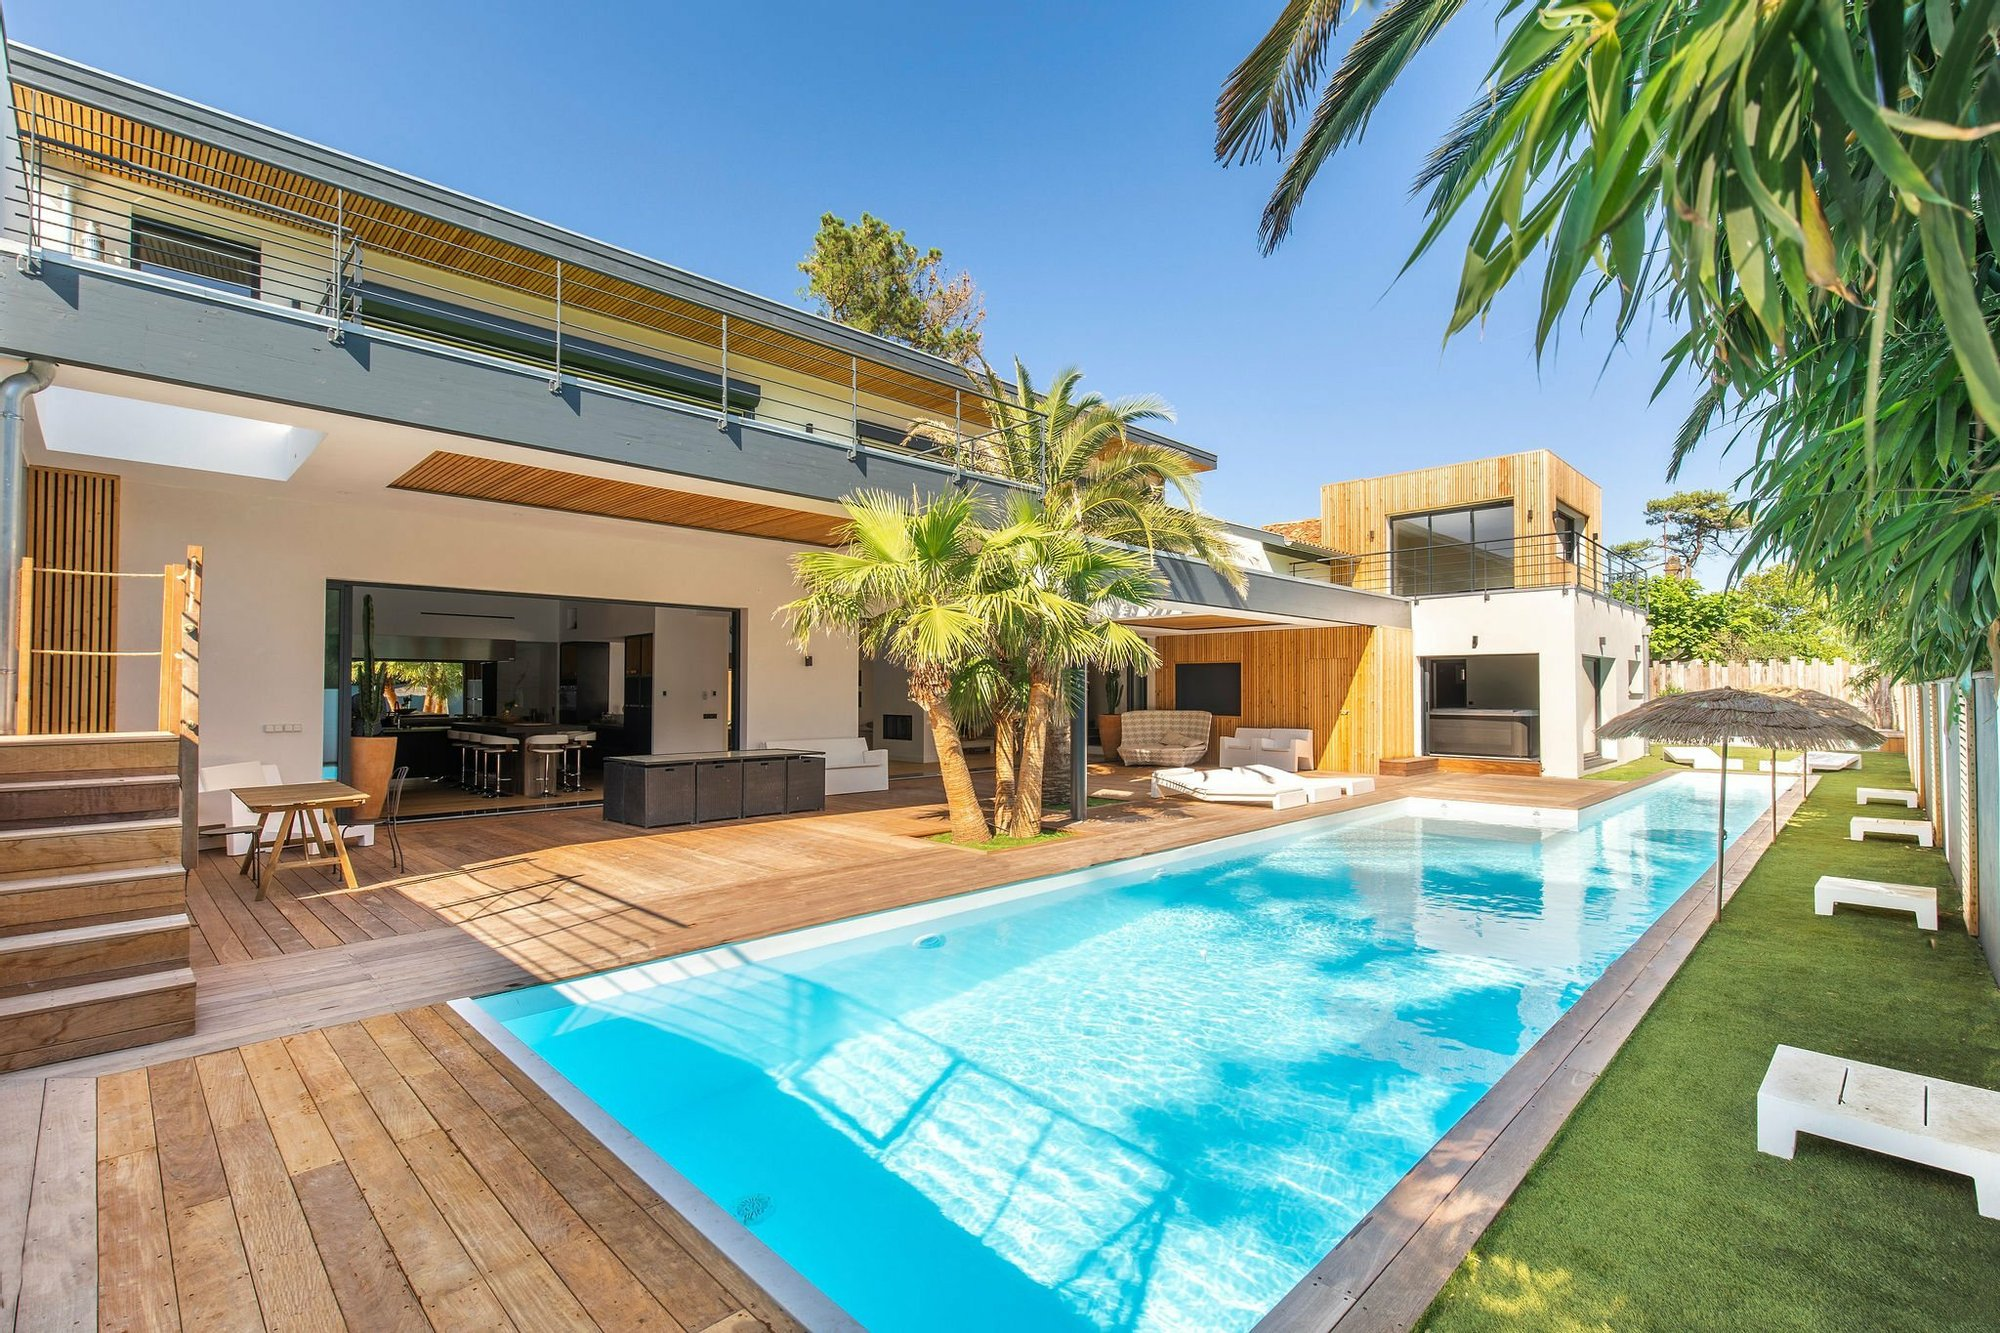 House in Anglet, Nouvelle-Aquitaine, France 1 - 11540714